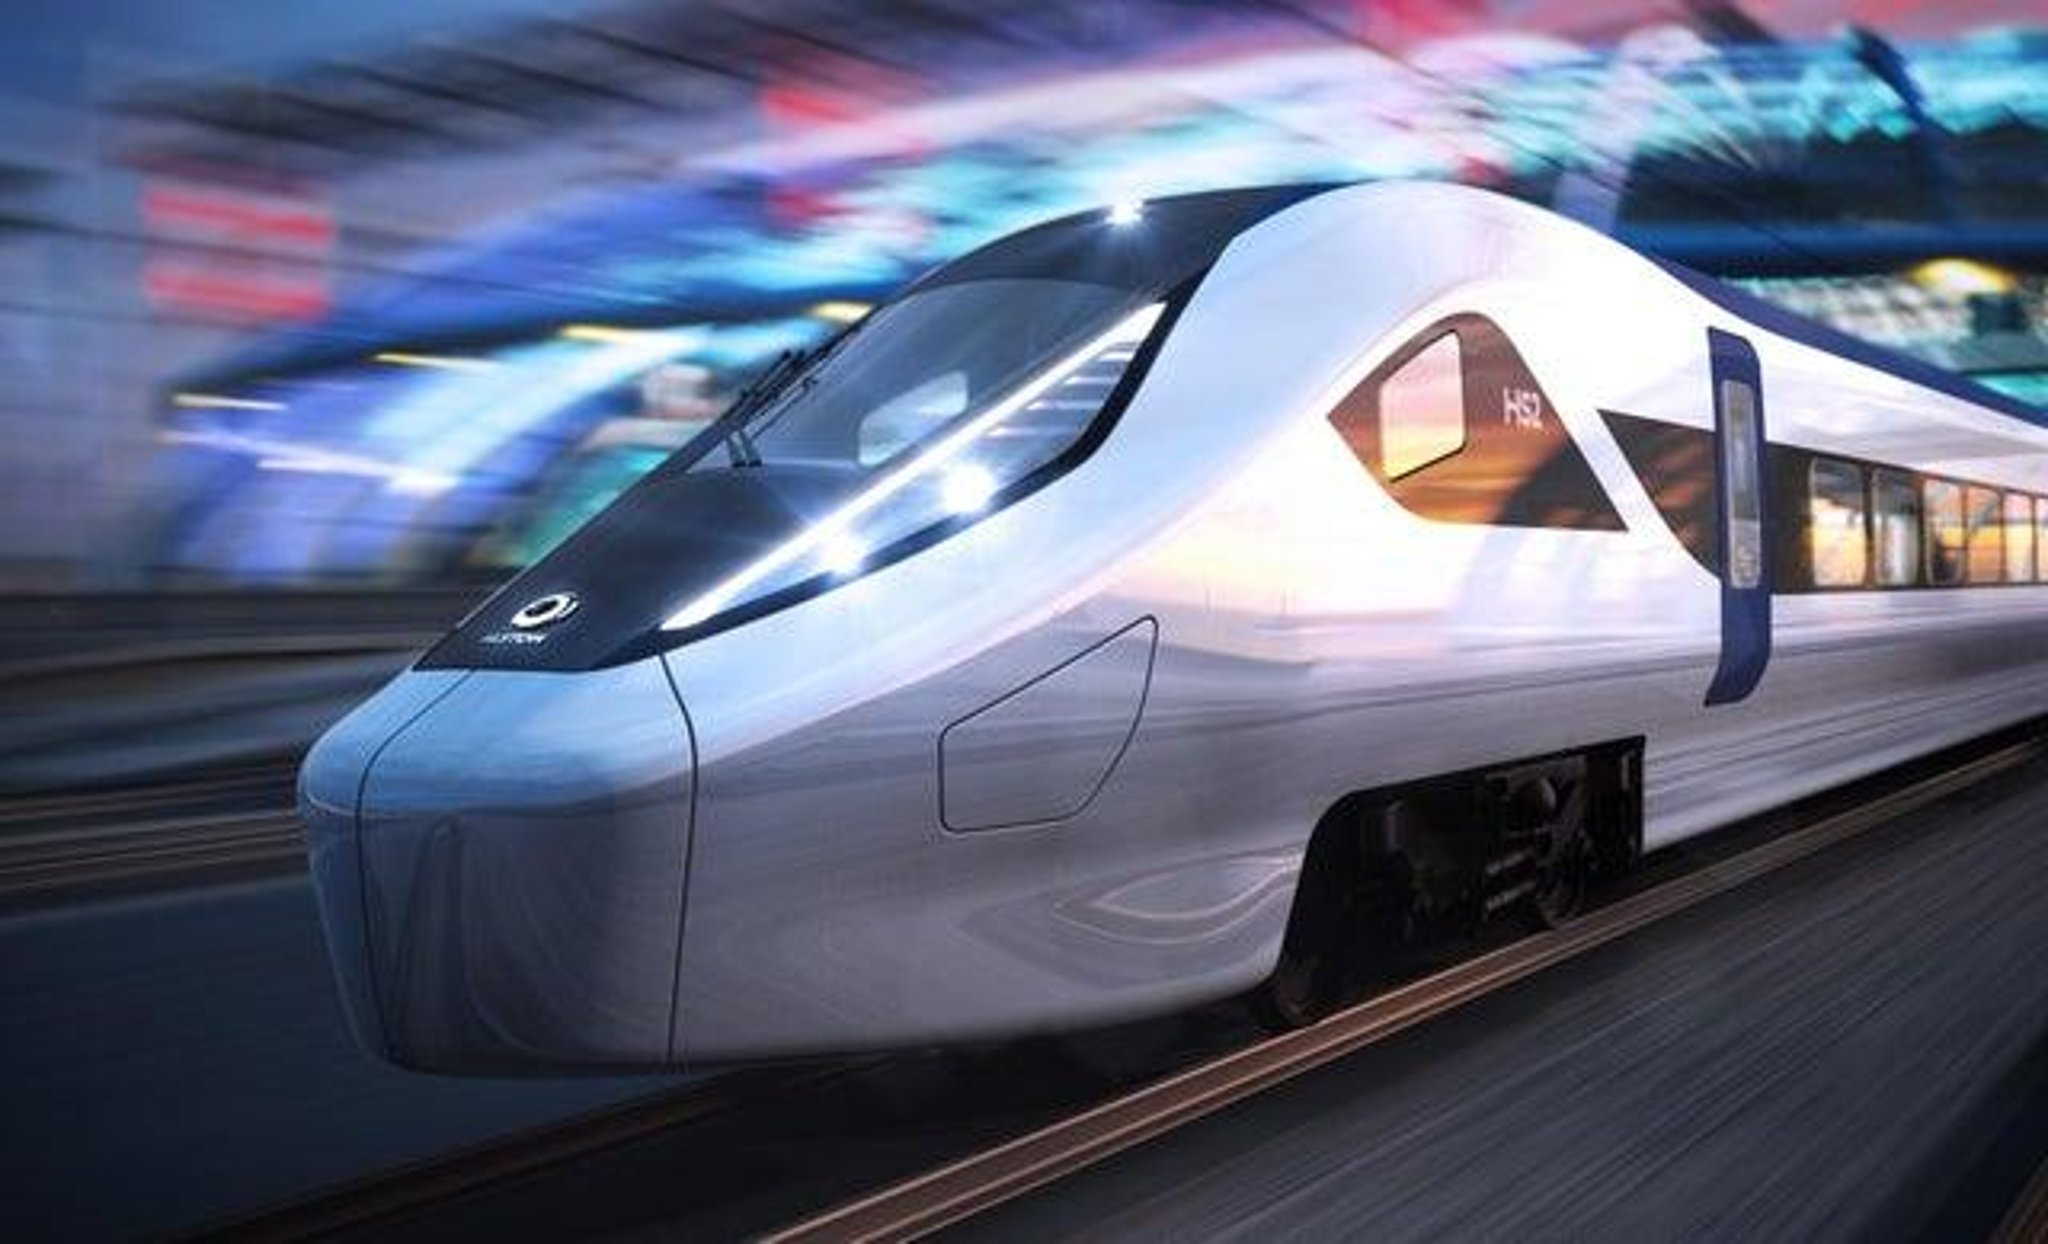 Northern and Midlands leaders call to take control of eastern leg of HS2